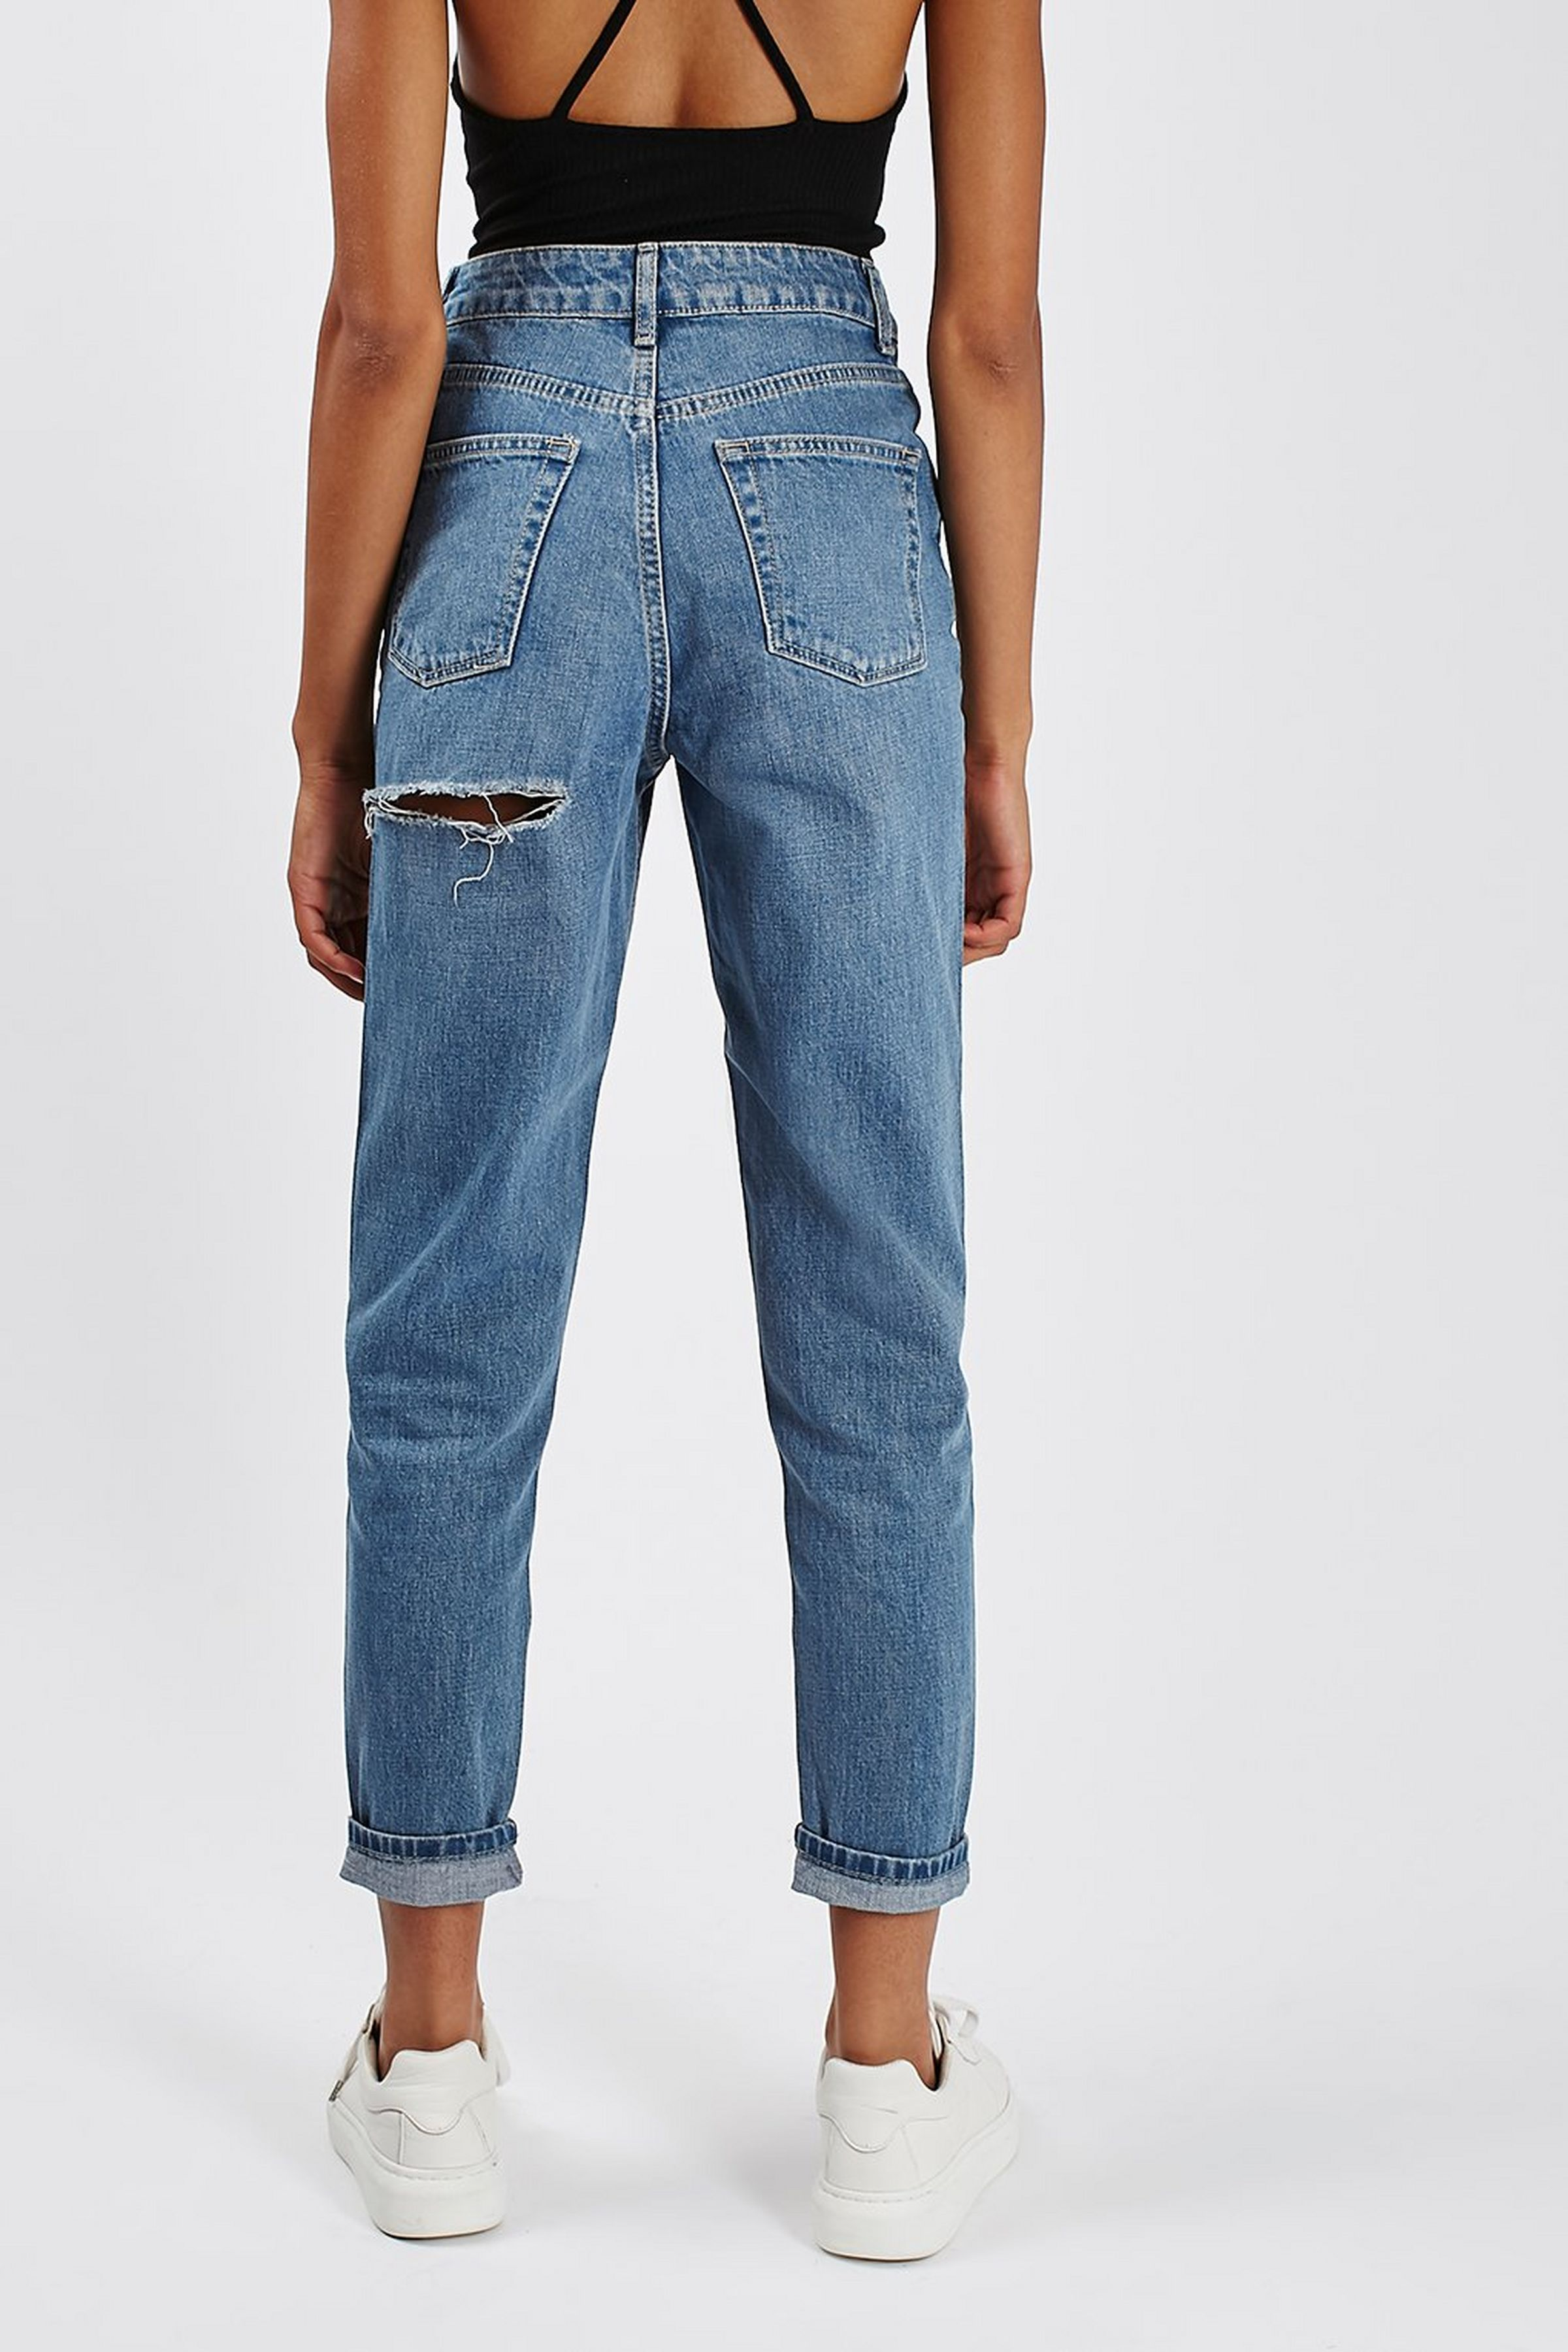 MOTO Cheeky Rip Mom Jeans in 2019 | Mom jeans | Ripped mom ...